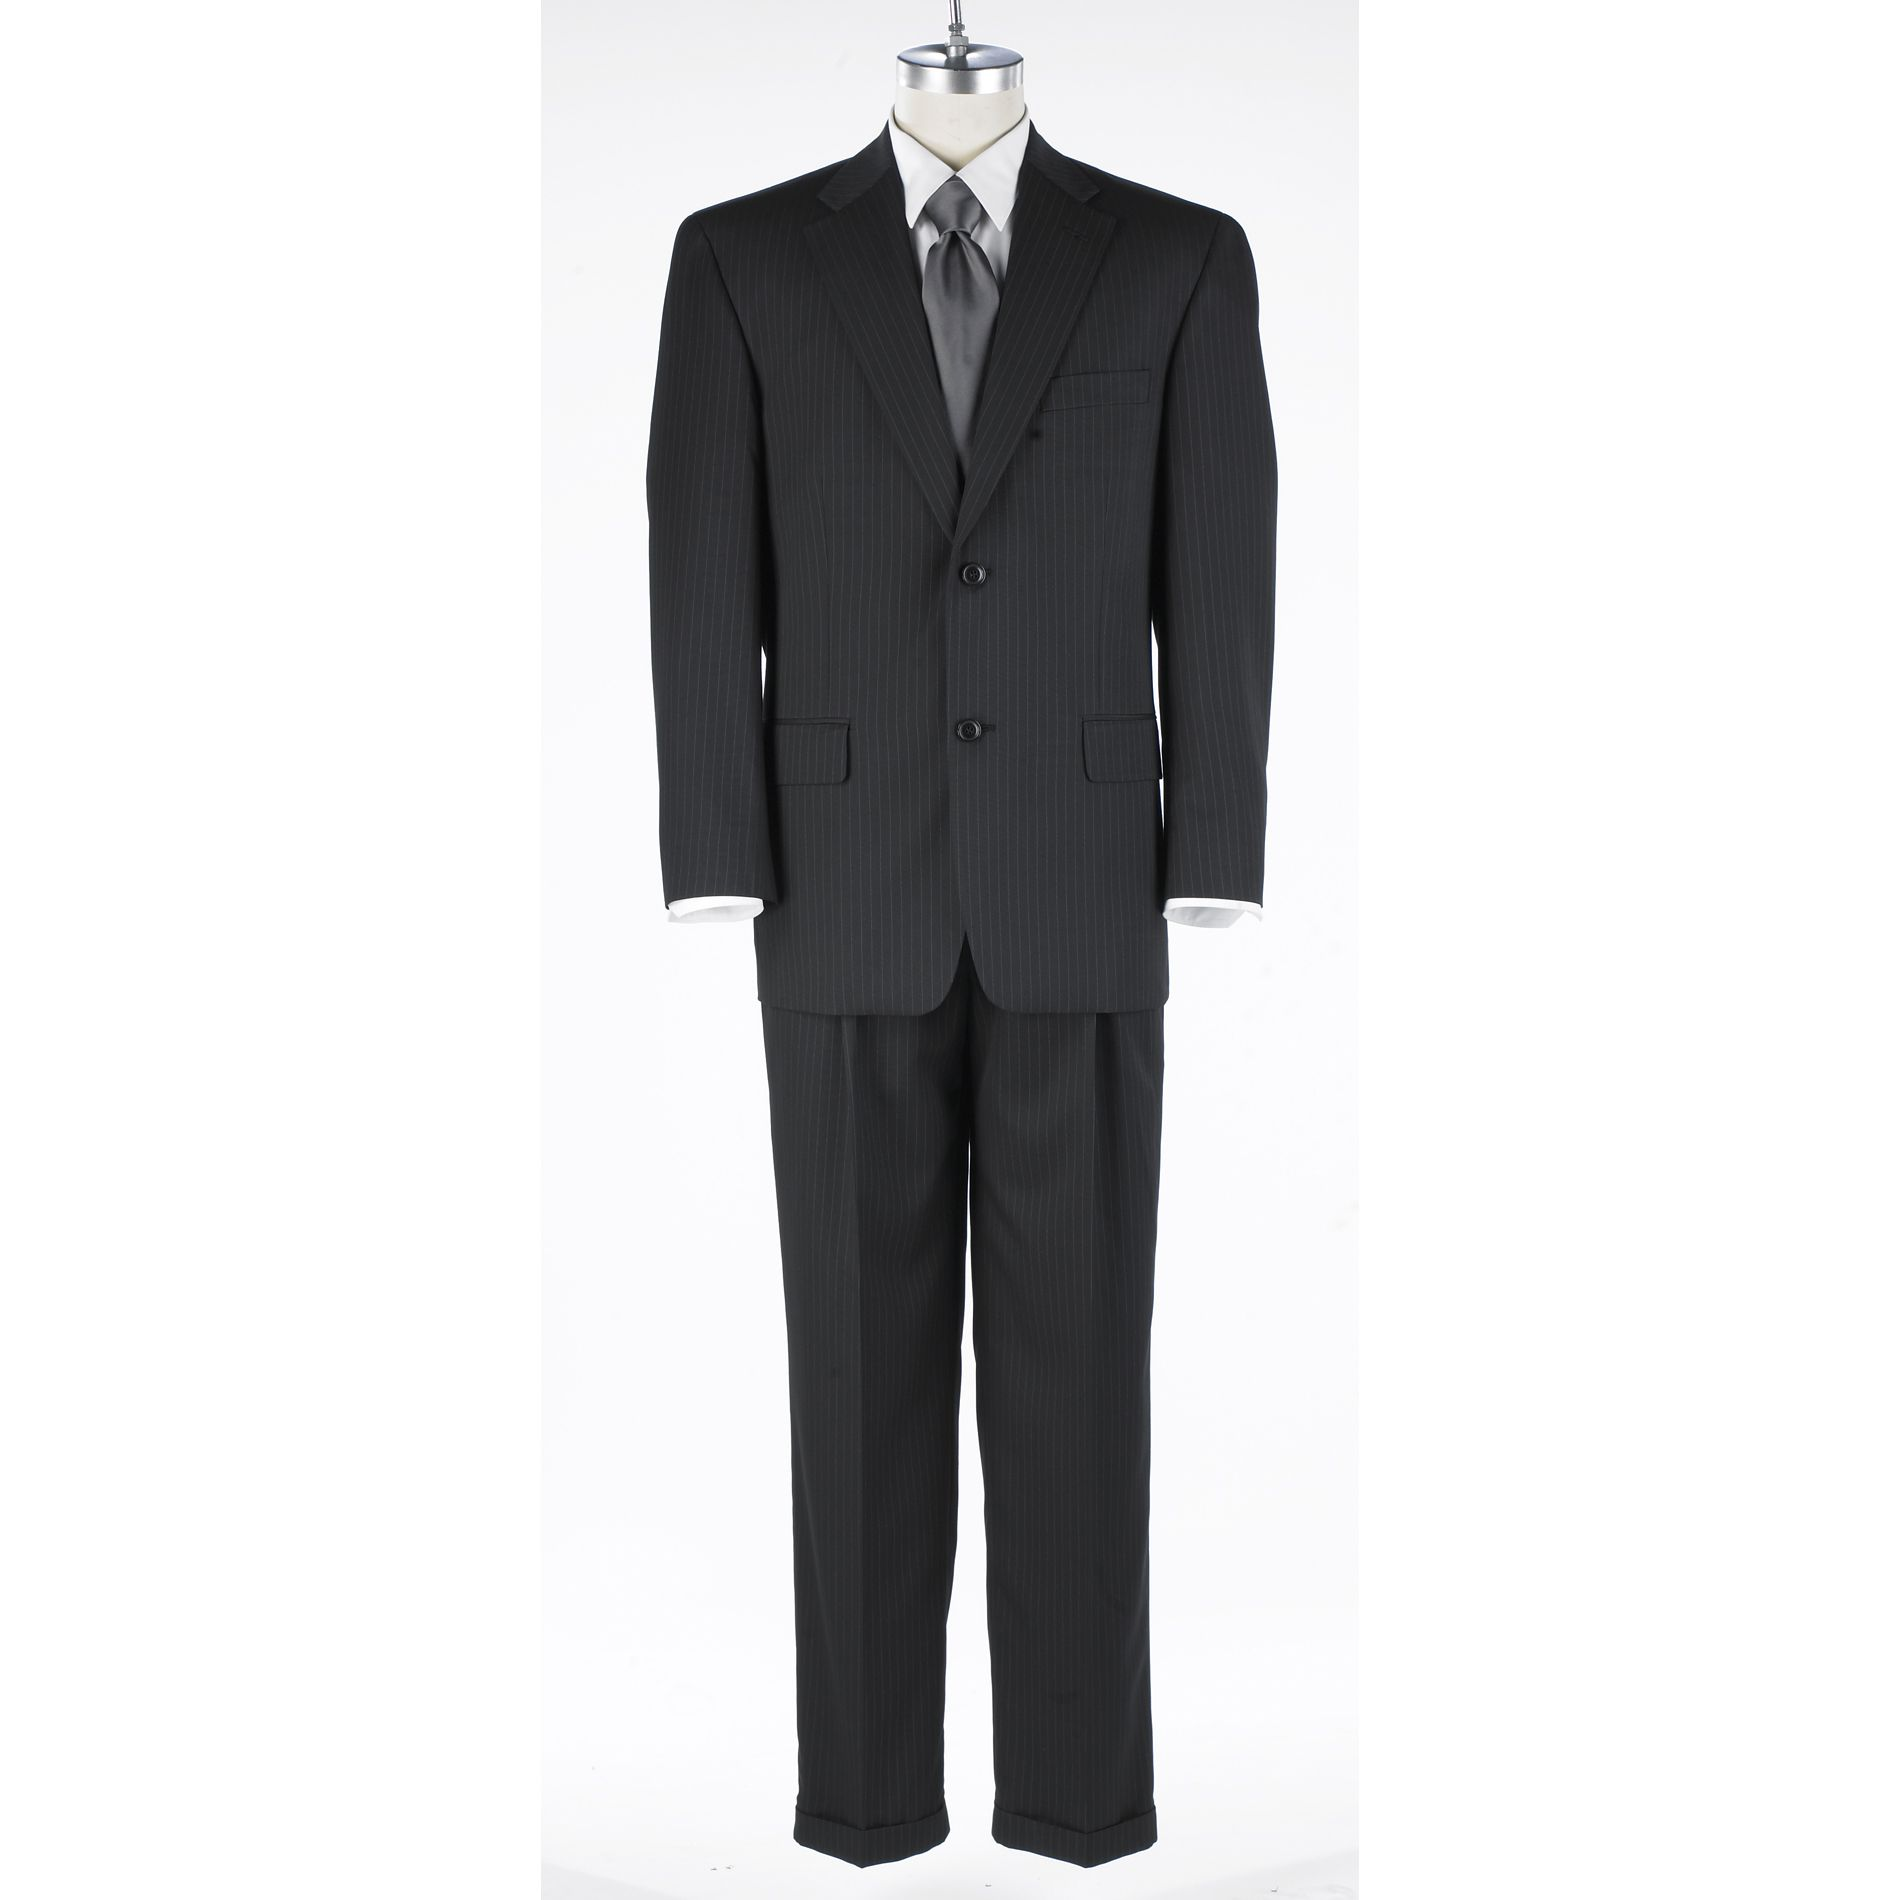 Haggar Black Stripe Suit Separate Collection at Sears.com